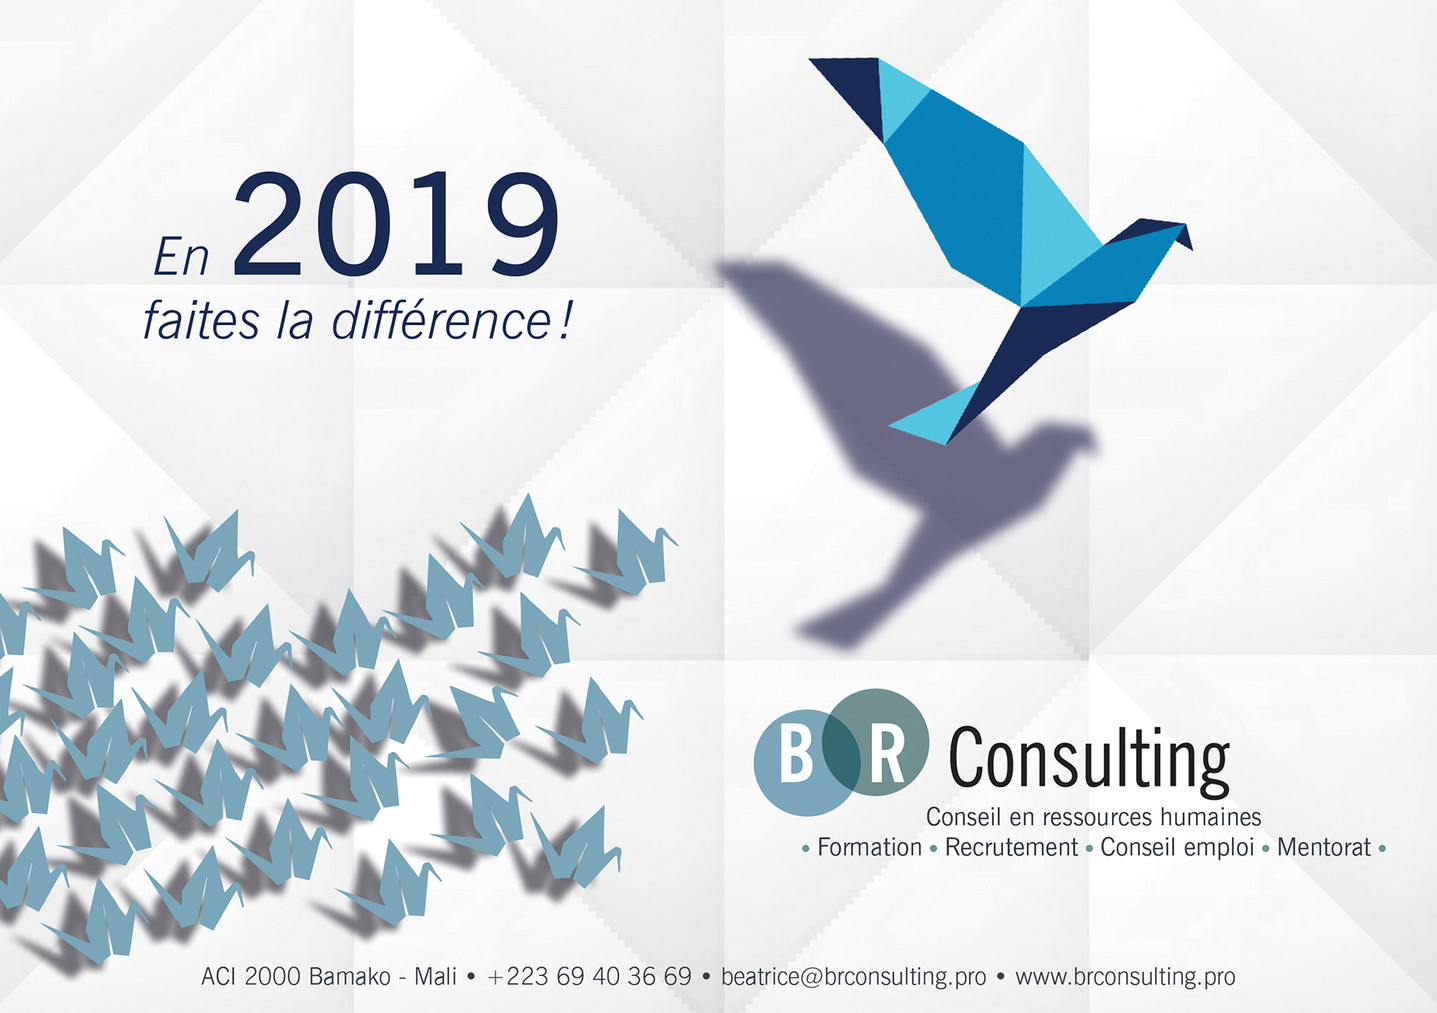 BR Consulting